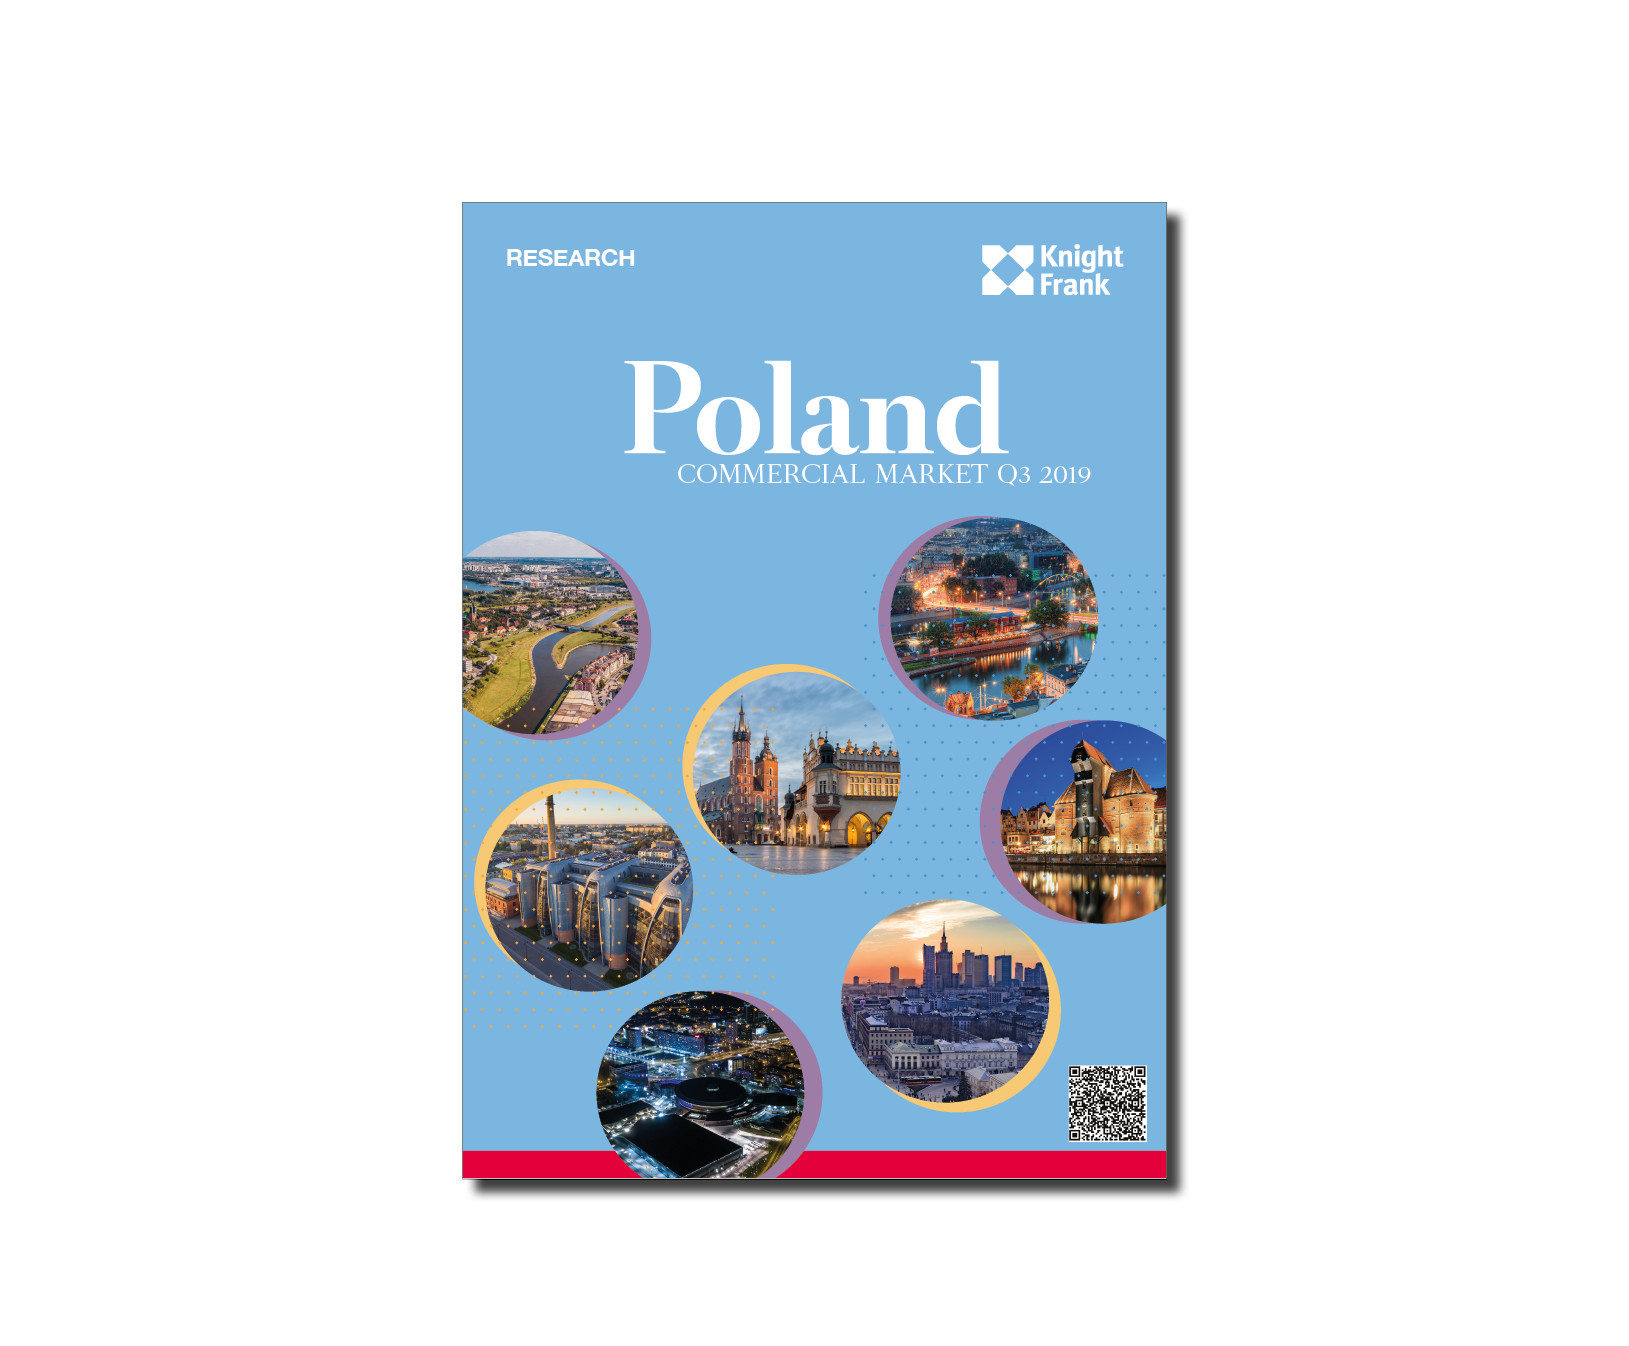 Commercial market in Poland Q3 2019